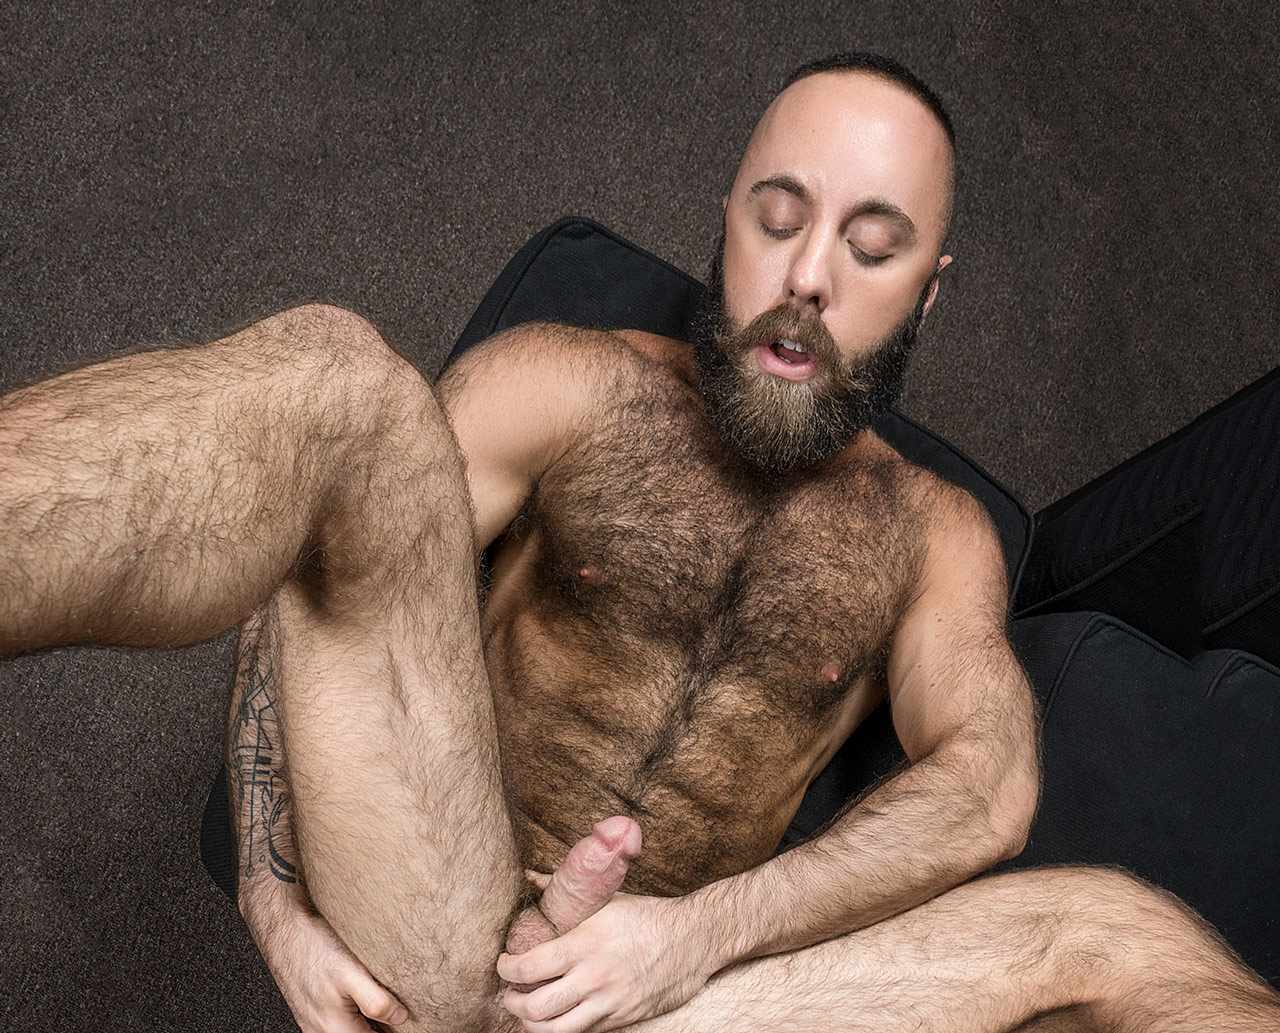 Hairy muscle porn